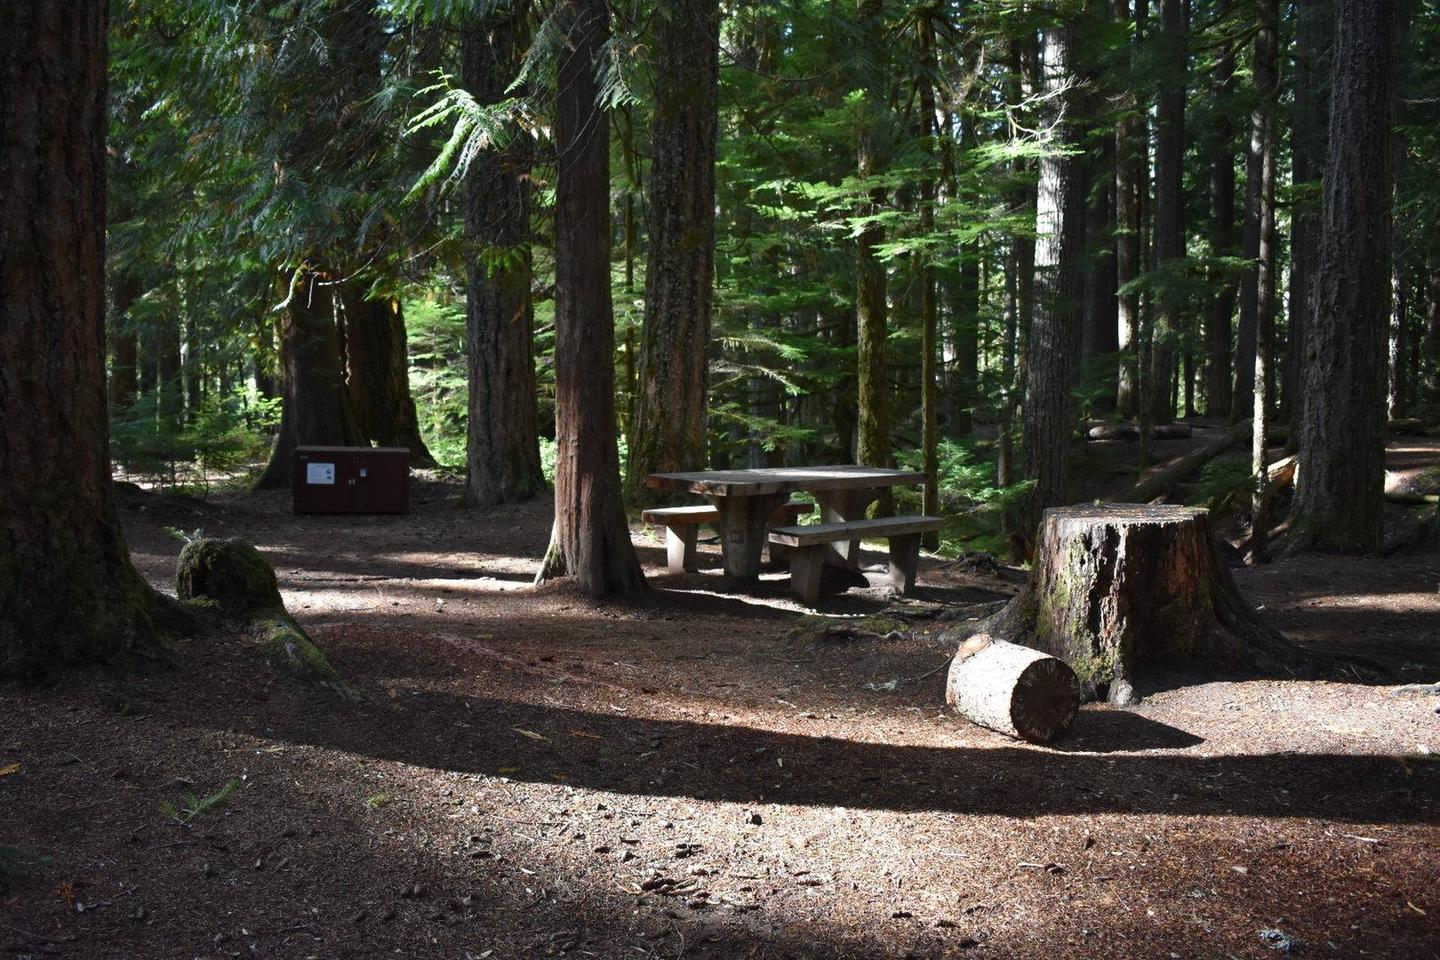 Ohanapecosh Campground - Site D011 AmenitiesCampers are provided with a picnic table, food storage box, and fire pit.